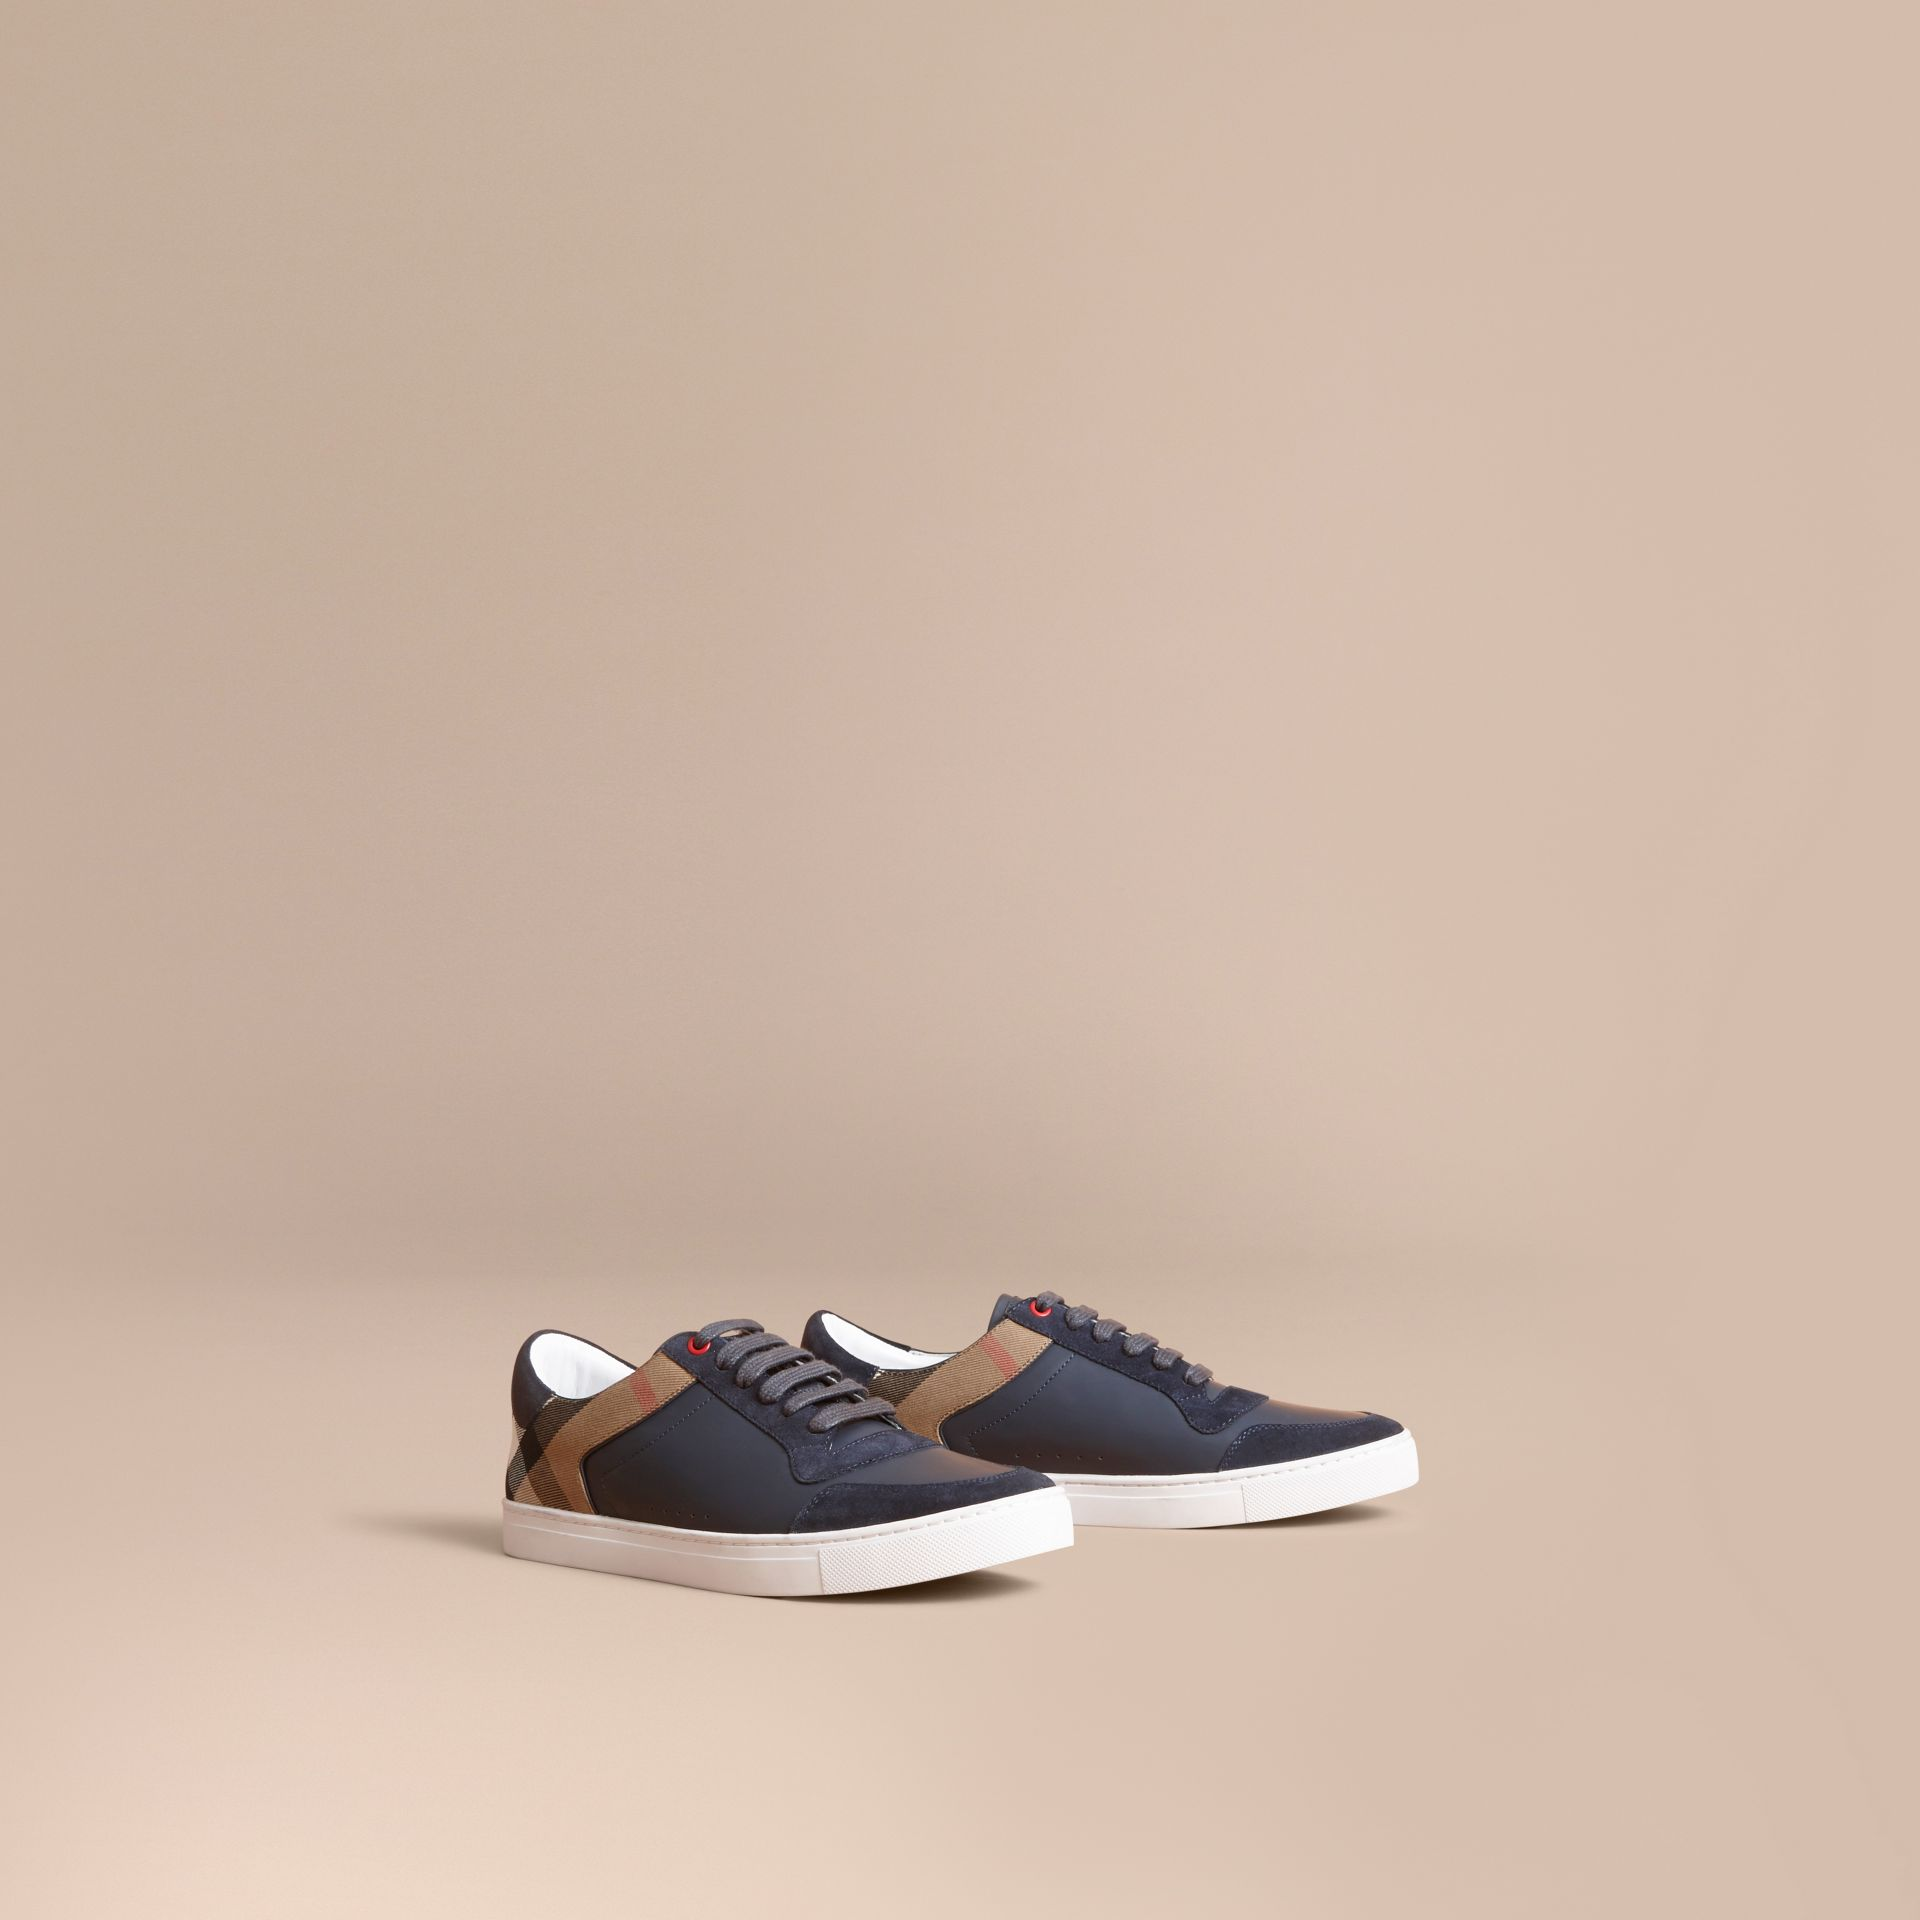 Sneakers en cuir avec motif House check (Marine) - Homme | Burberry - photo de la galerie 1